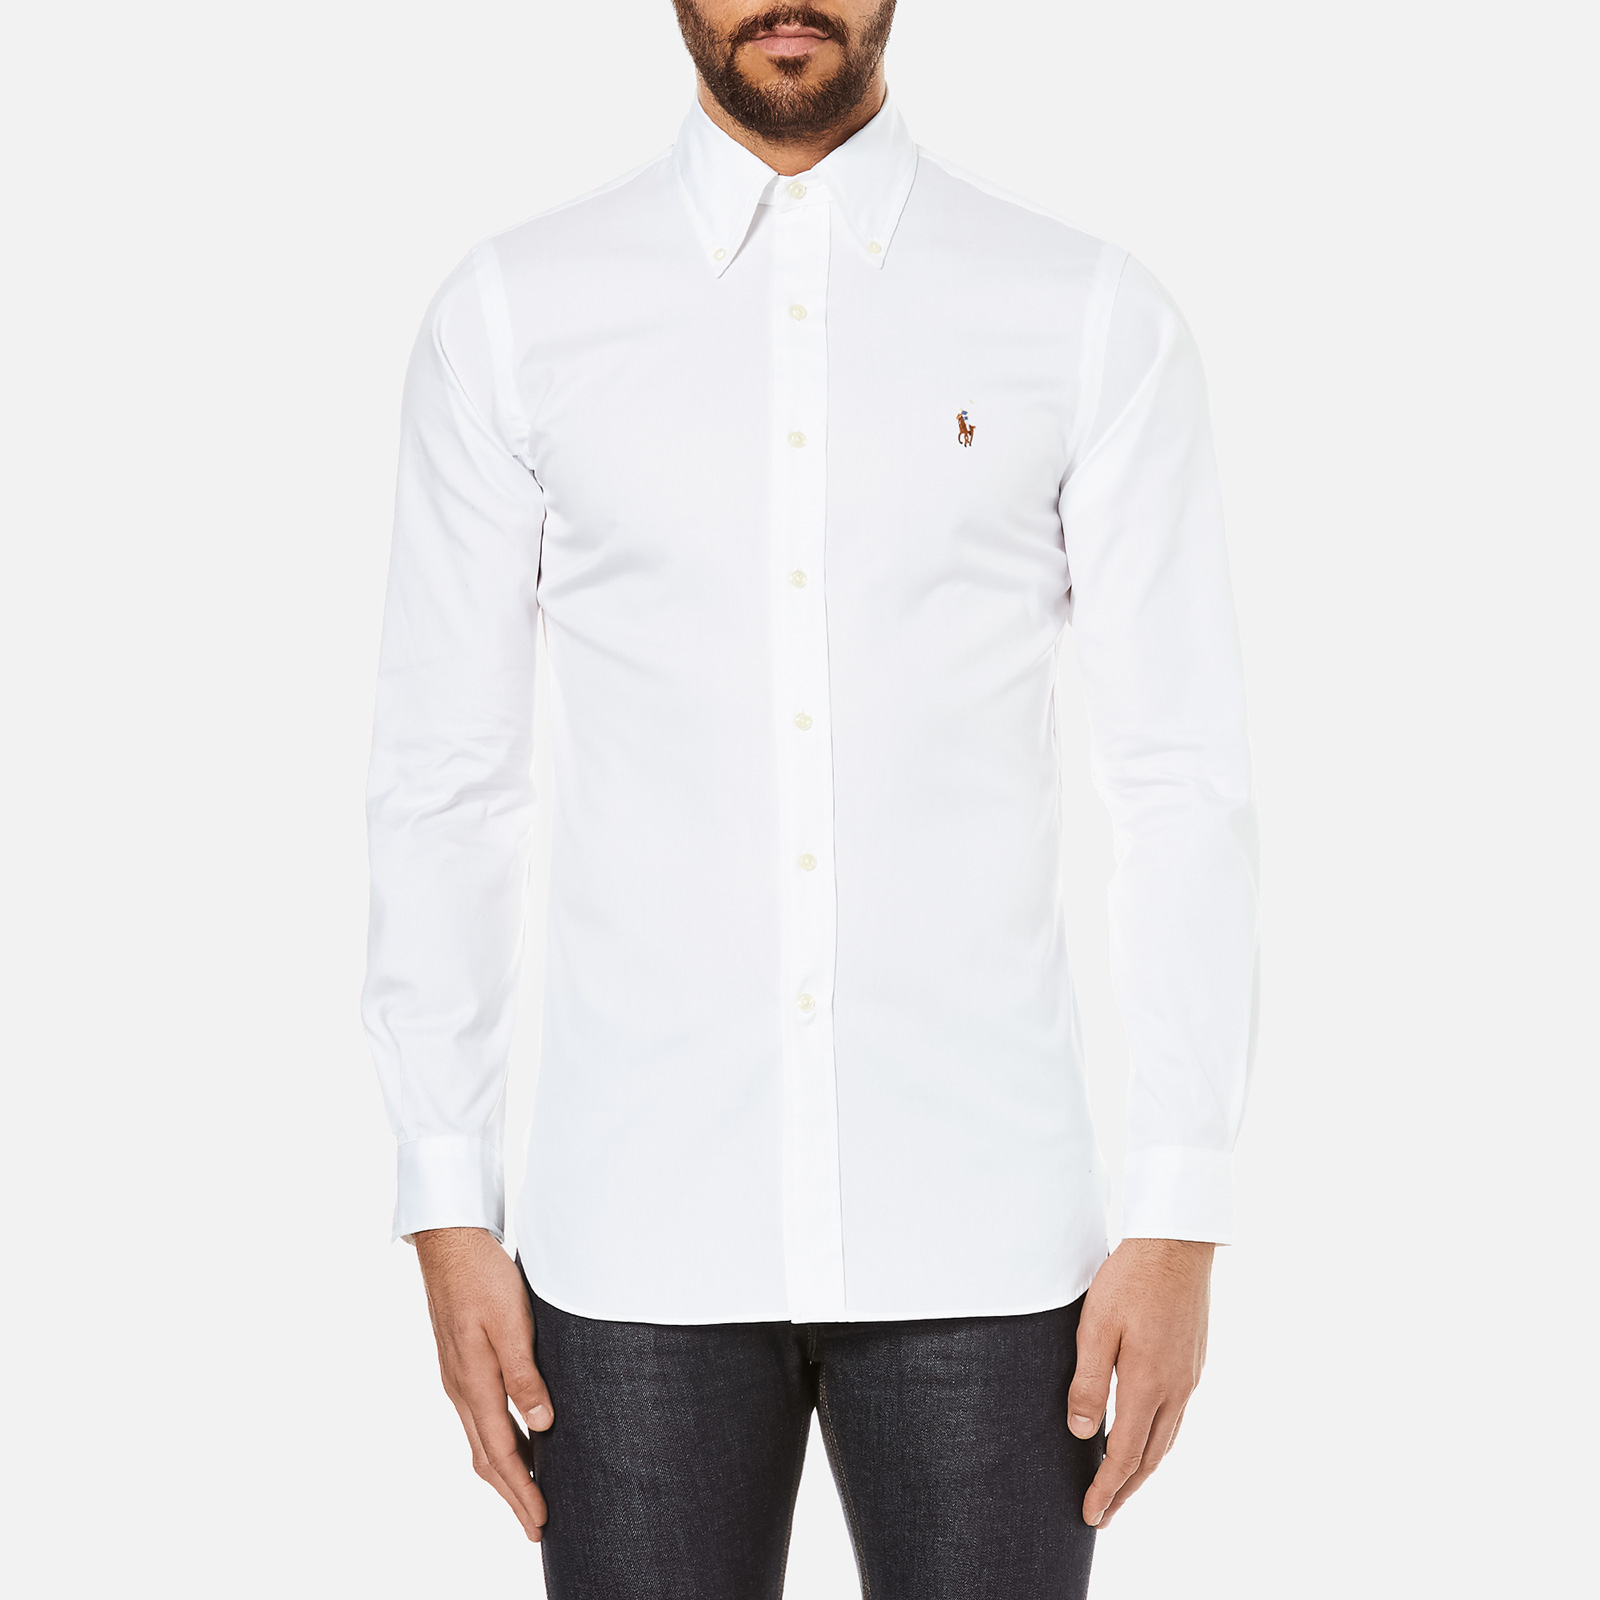 ca4a9f2731644 Polo Ralph Lauren Men s Custom Fit Button Down Pinpoint Oxford Shirt -  White - Free UK Delivery over £50